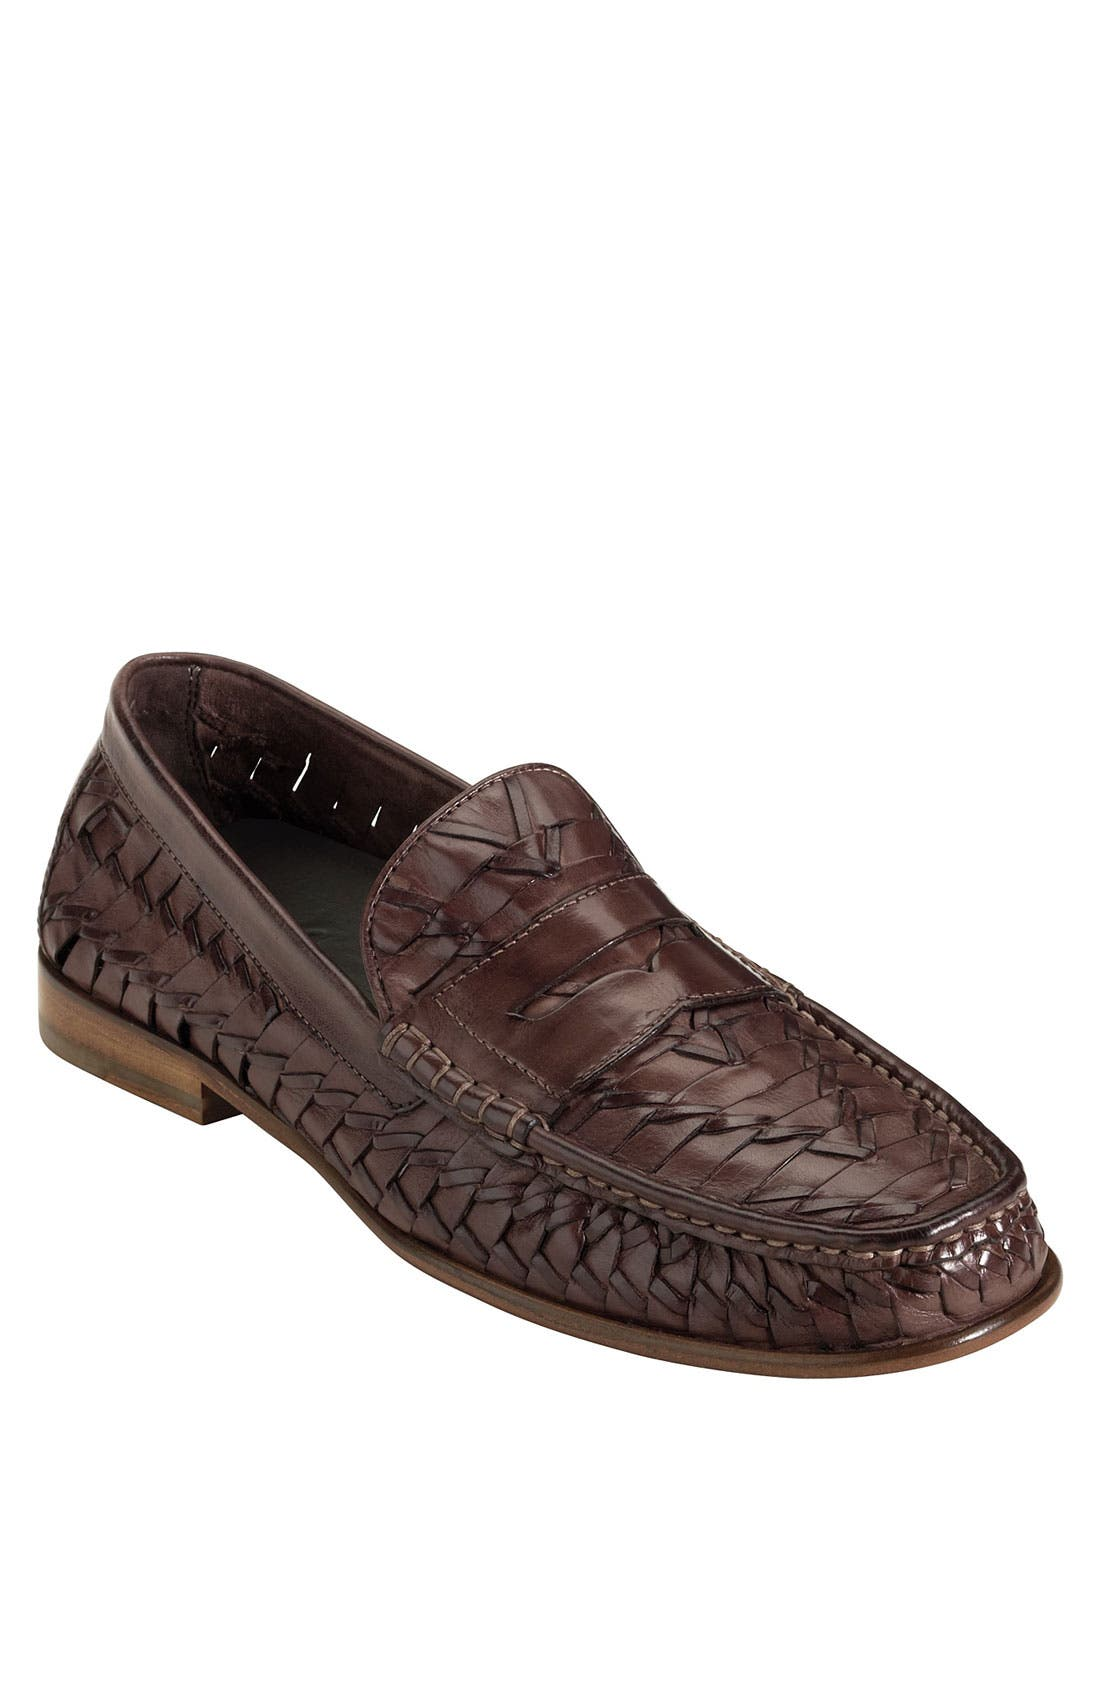 Main Image - Cole Haan 'Air Tremont' Penny Loafer